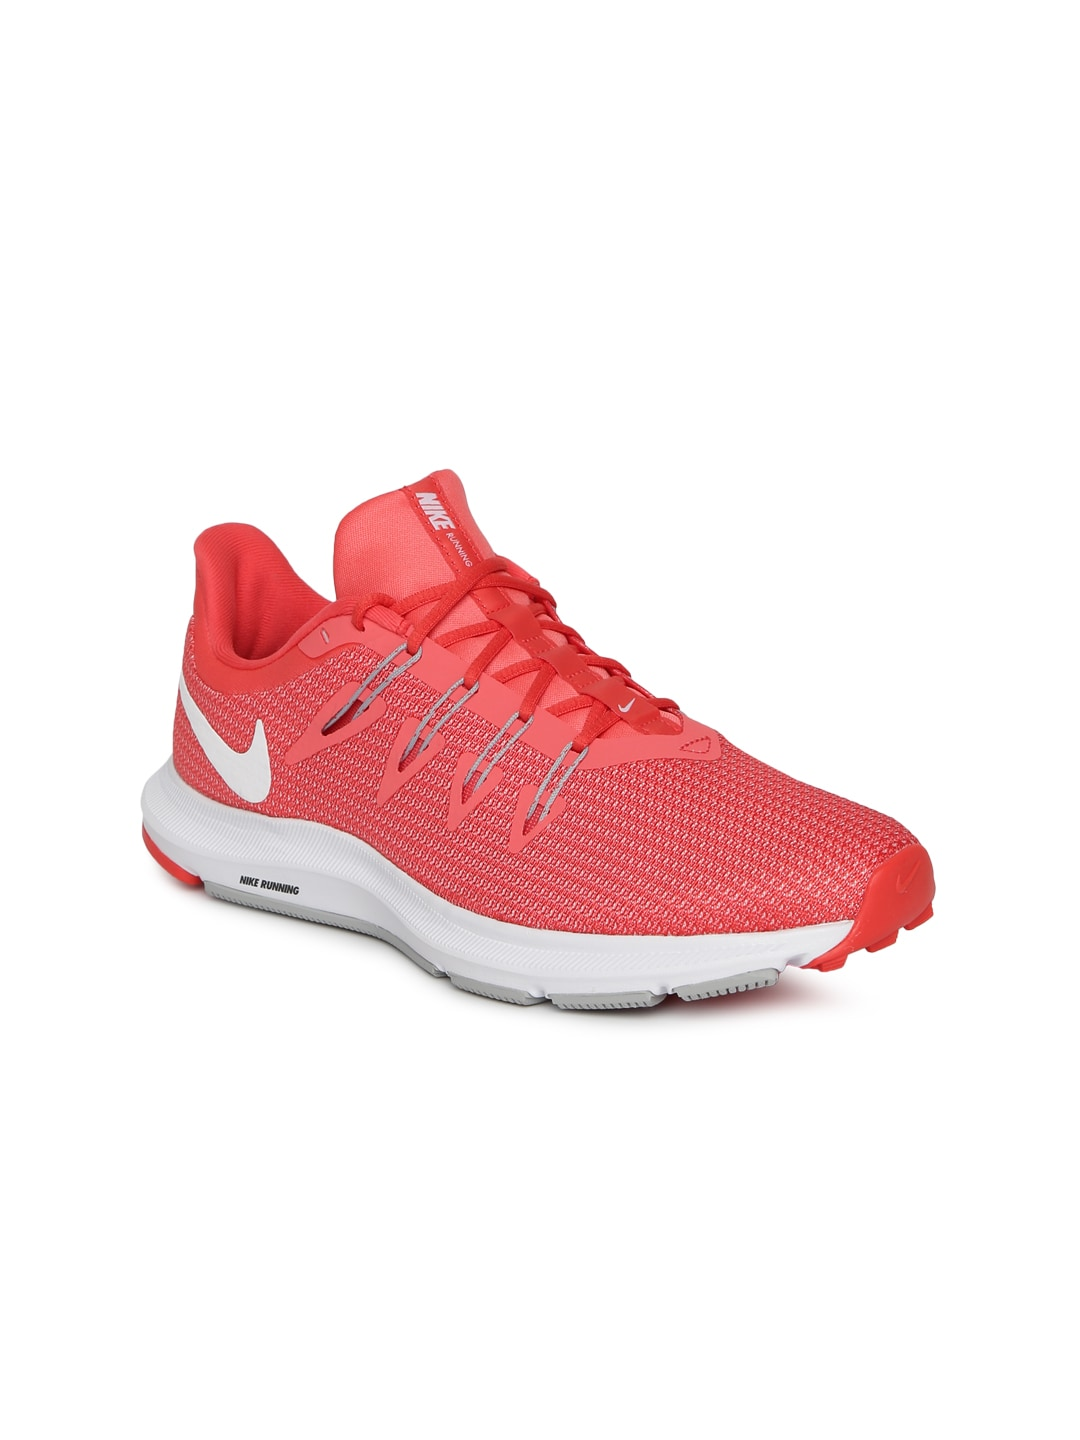 huge selection of 72a67 c3cd2 Nike Red Shoes - Buy Nike Red Shoes Online in India